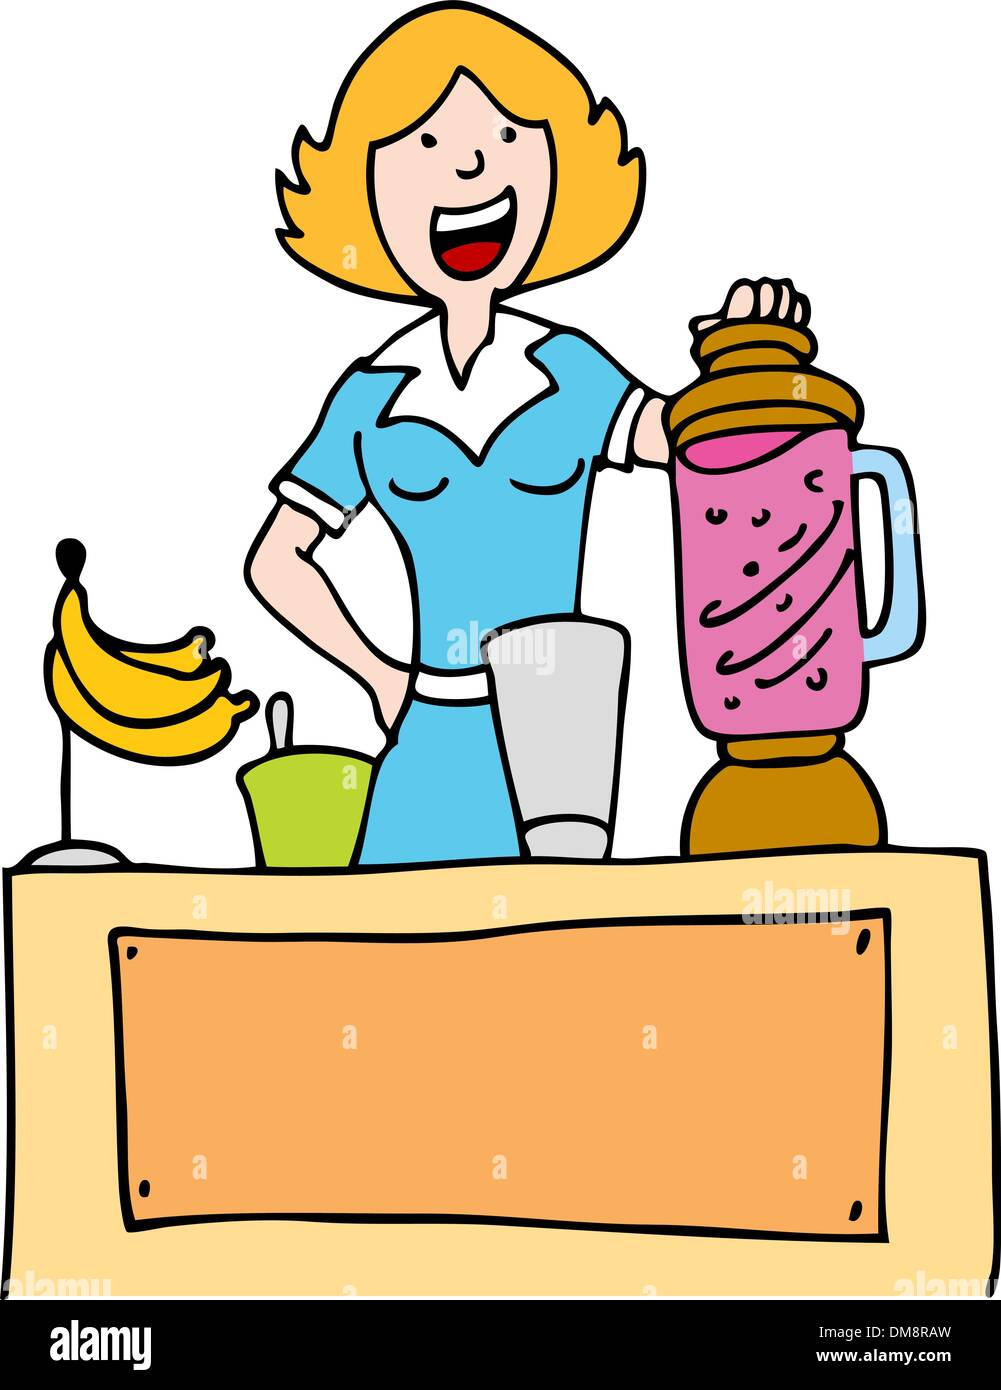 Woman Making a Banana Smoothie Stock Vector